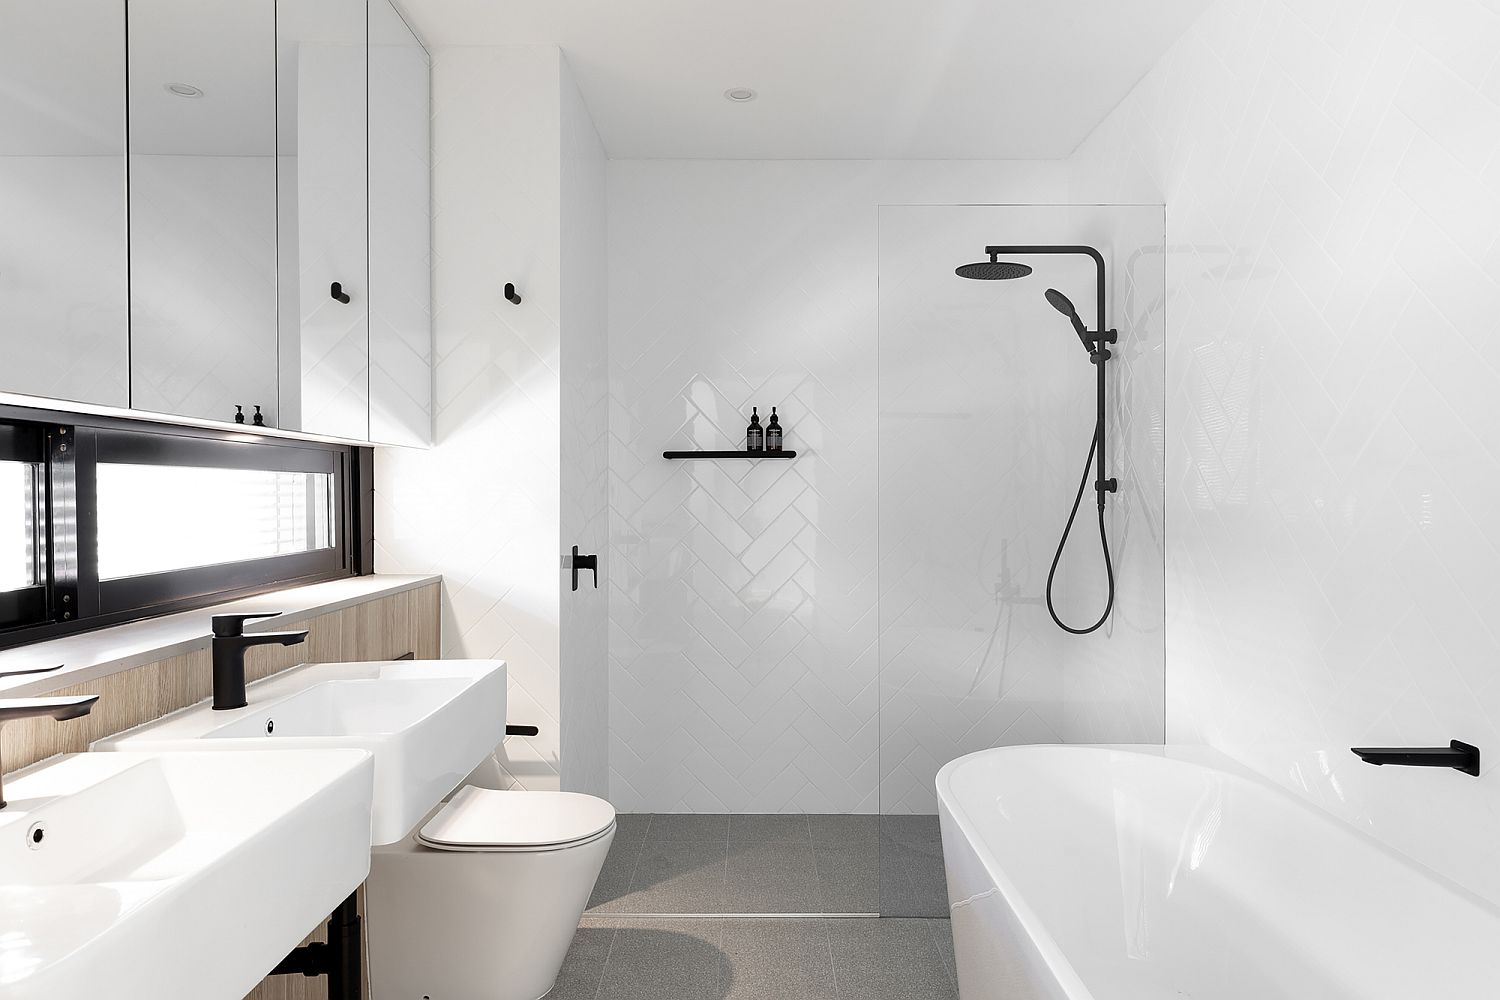 All-white-bathroom-of-the-house-with-pops-of-light-wood-and-black-thrown-into-the-mix